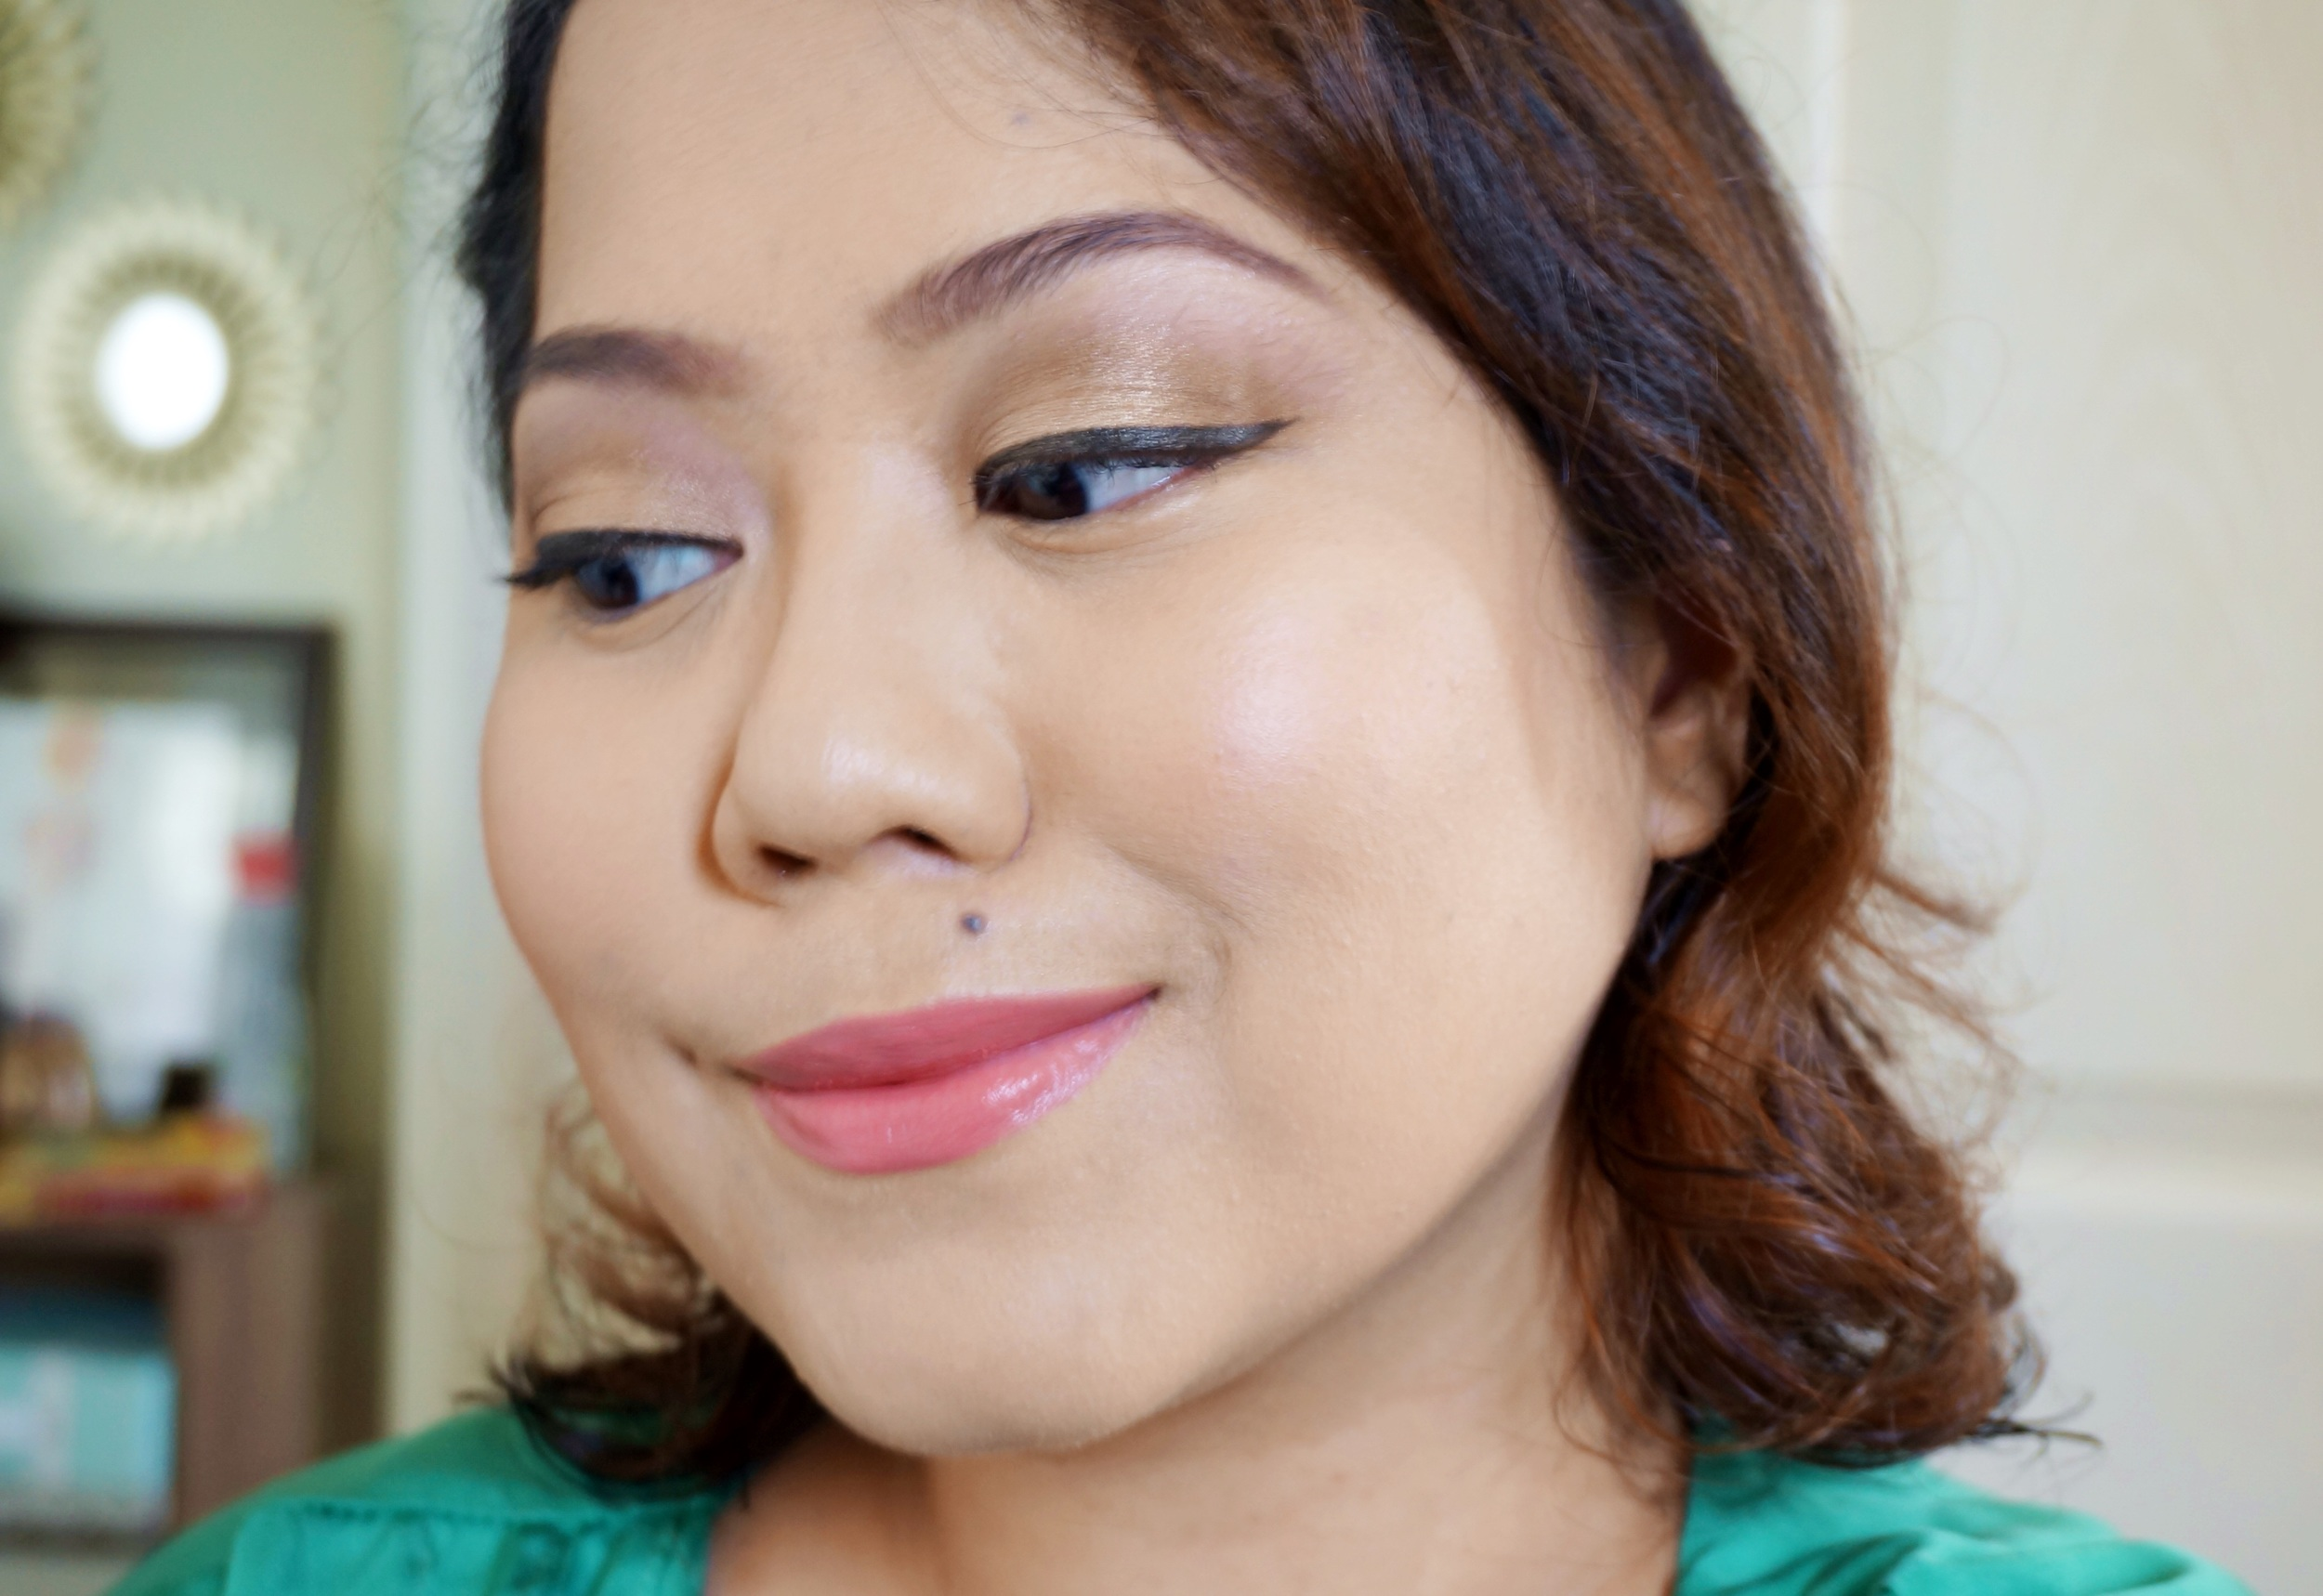 In this look, I used the taupe brown on the 2nd column, 2nd row on my eyebrows. I applied the gold (3rd column, 2nd row) all over my lids, then blended the bronze (4th column, 1st row) on my crease. I added a tinge of the black (6th column, 2nd row) on the outer v for a bit of definition. Finally, I placed the matte beige (3rd column, 1st row) right underneath my brows.